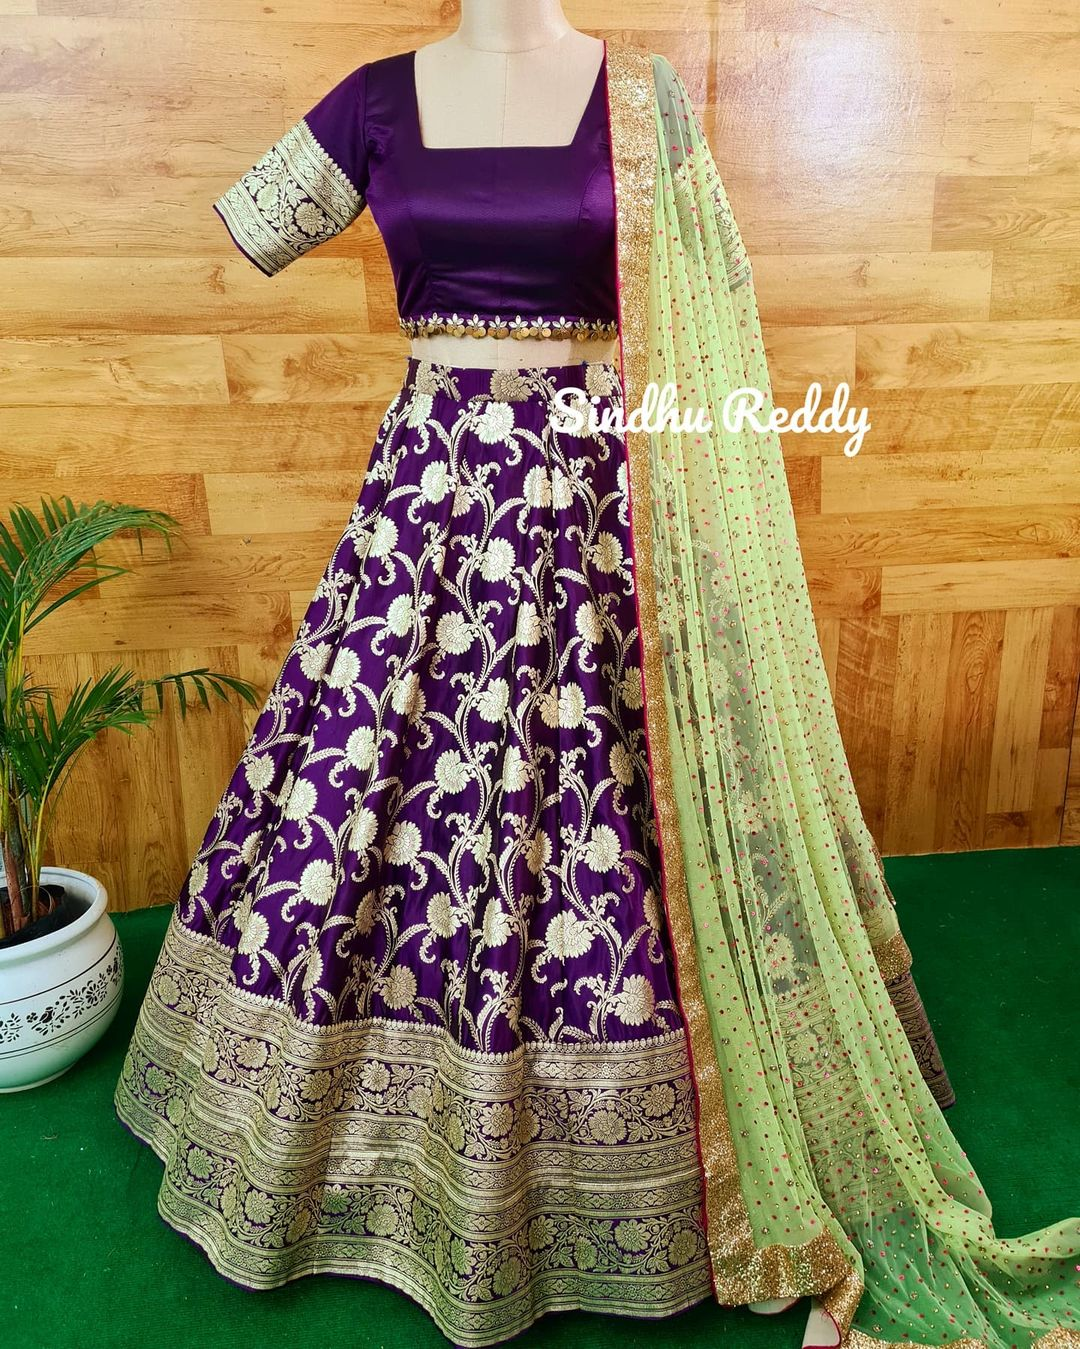 Magnificence of a Banarasi Lehenga  If you are enthusiastic about wearing a wedding Lehenga that is not heavy but rather still looks lofty  at that point a Banarasi silk Lehenga is your go-to decision! 2021-08-21